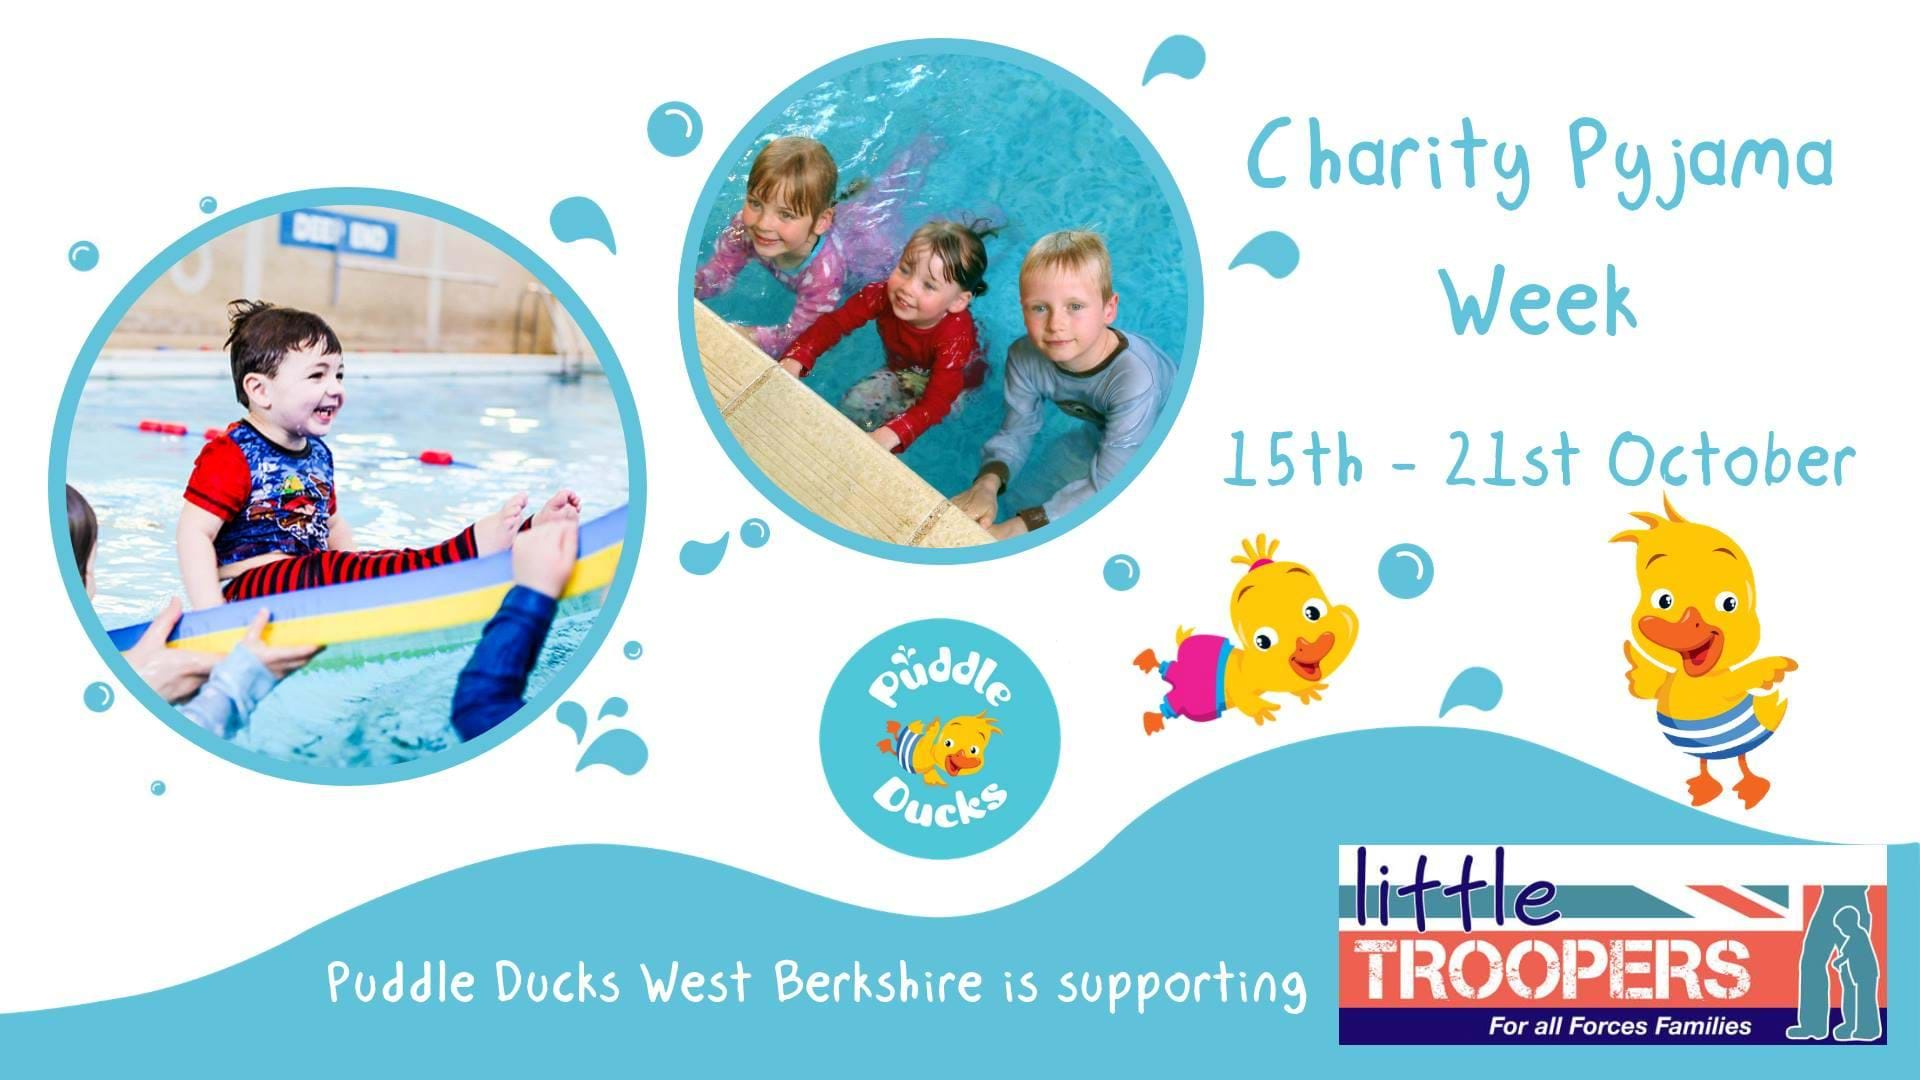 Puddle Ducks Pyjama Party! 15th - 21st October